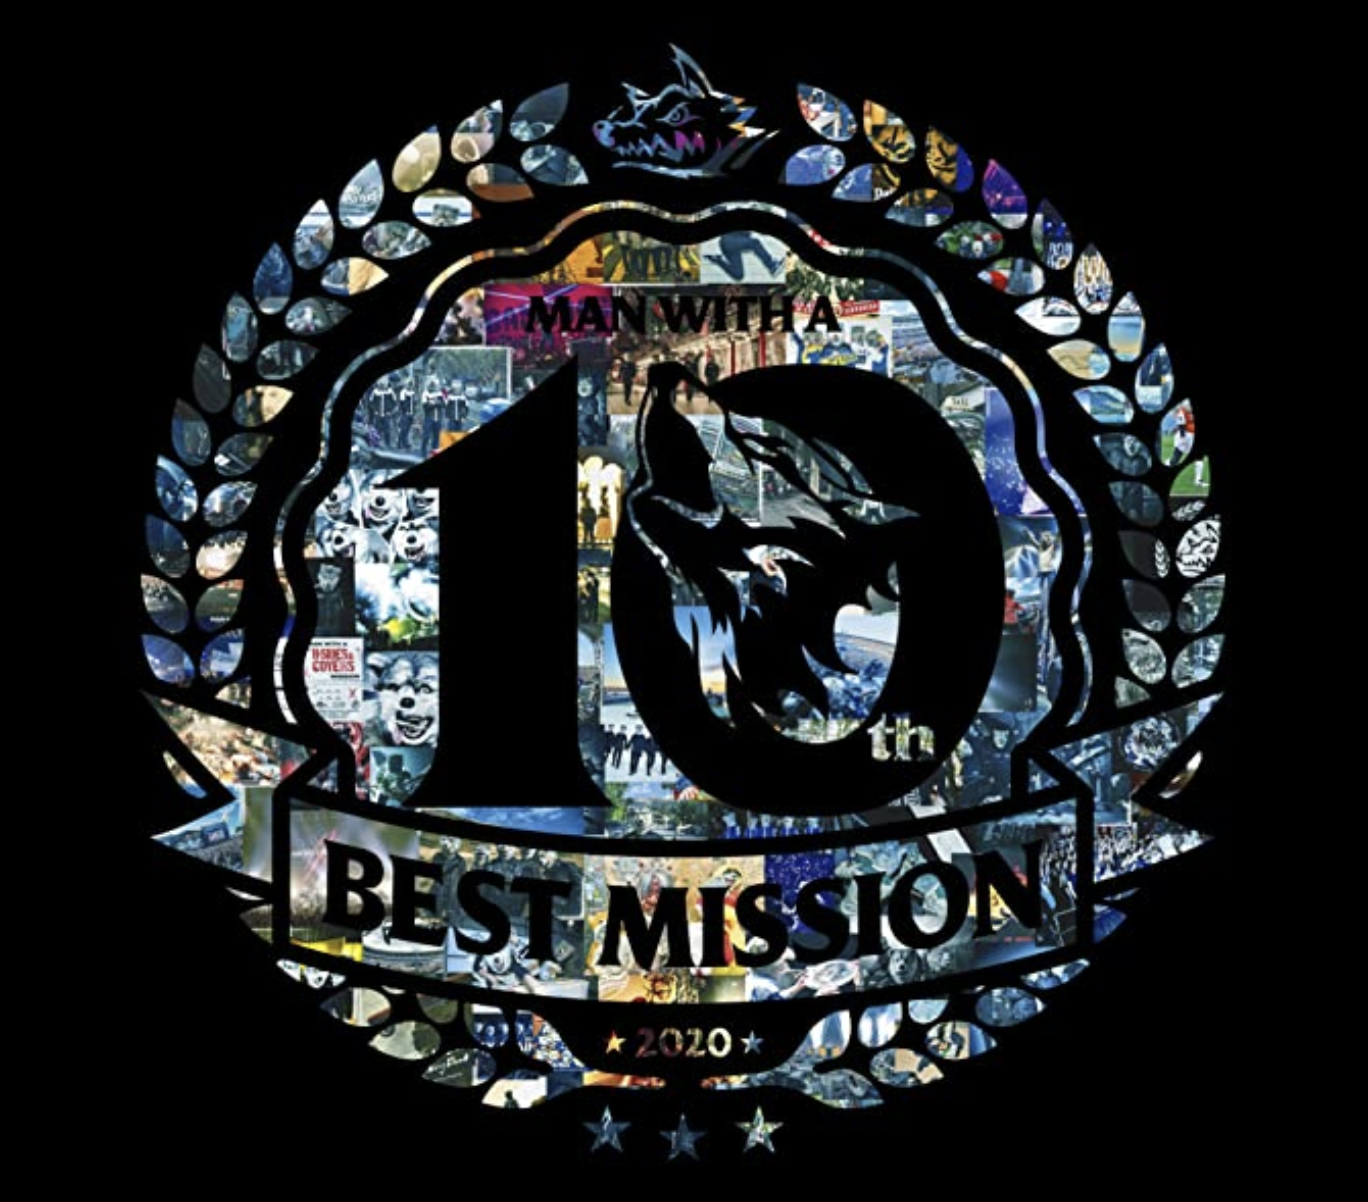 """「MAN WITH A """"BEST"""" MISSION」"""